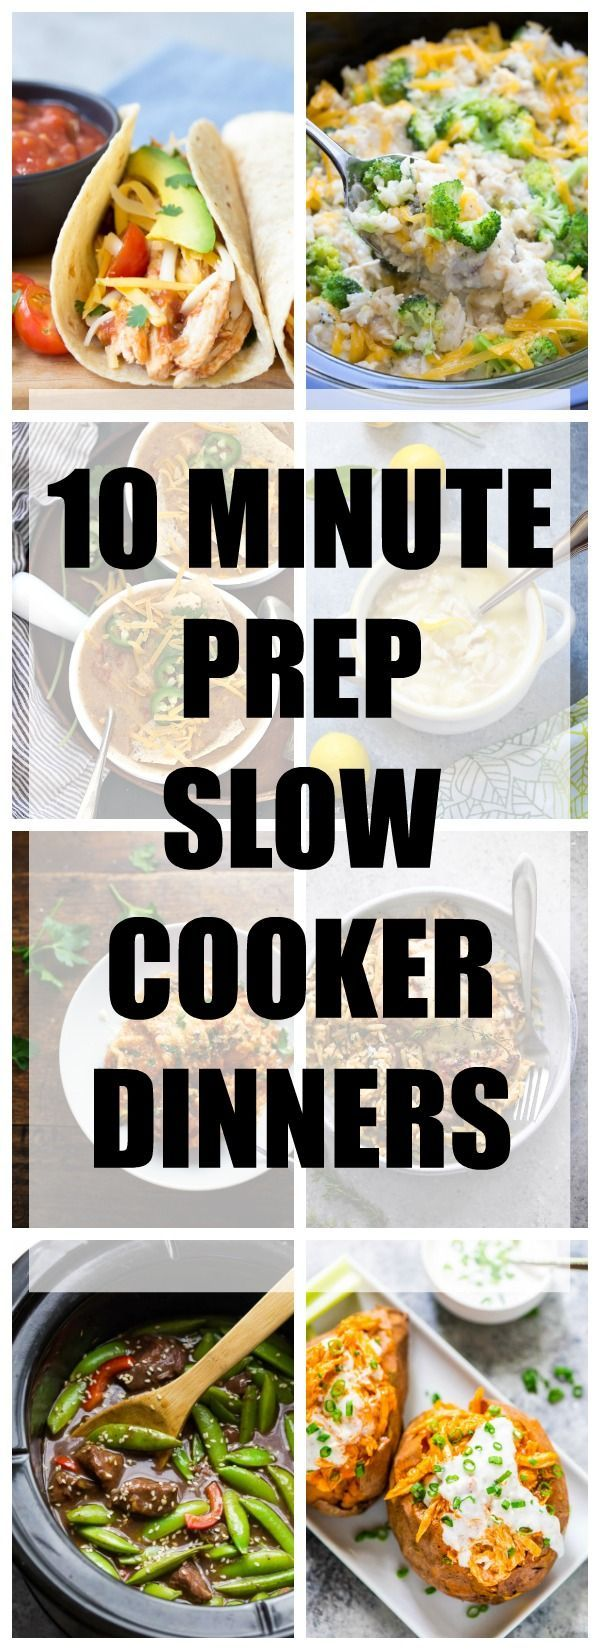 10 Minute Prep Slow Cooker Dinner Recipes! Super EASY crock pot meals for your busy days! | http://www.kristineskitchenblog.com